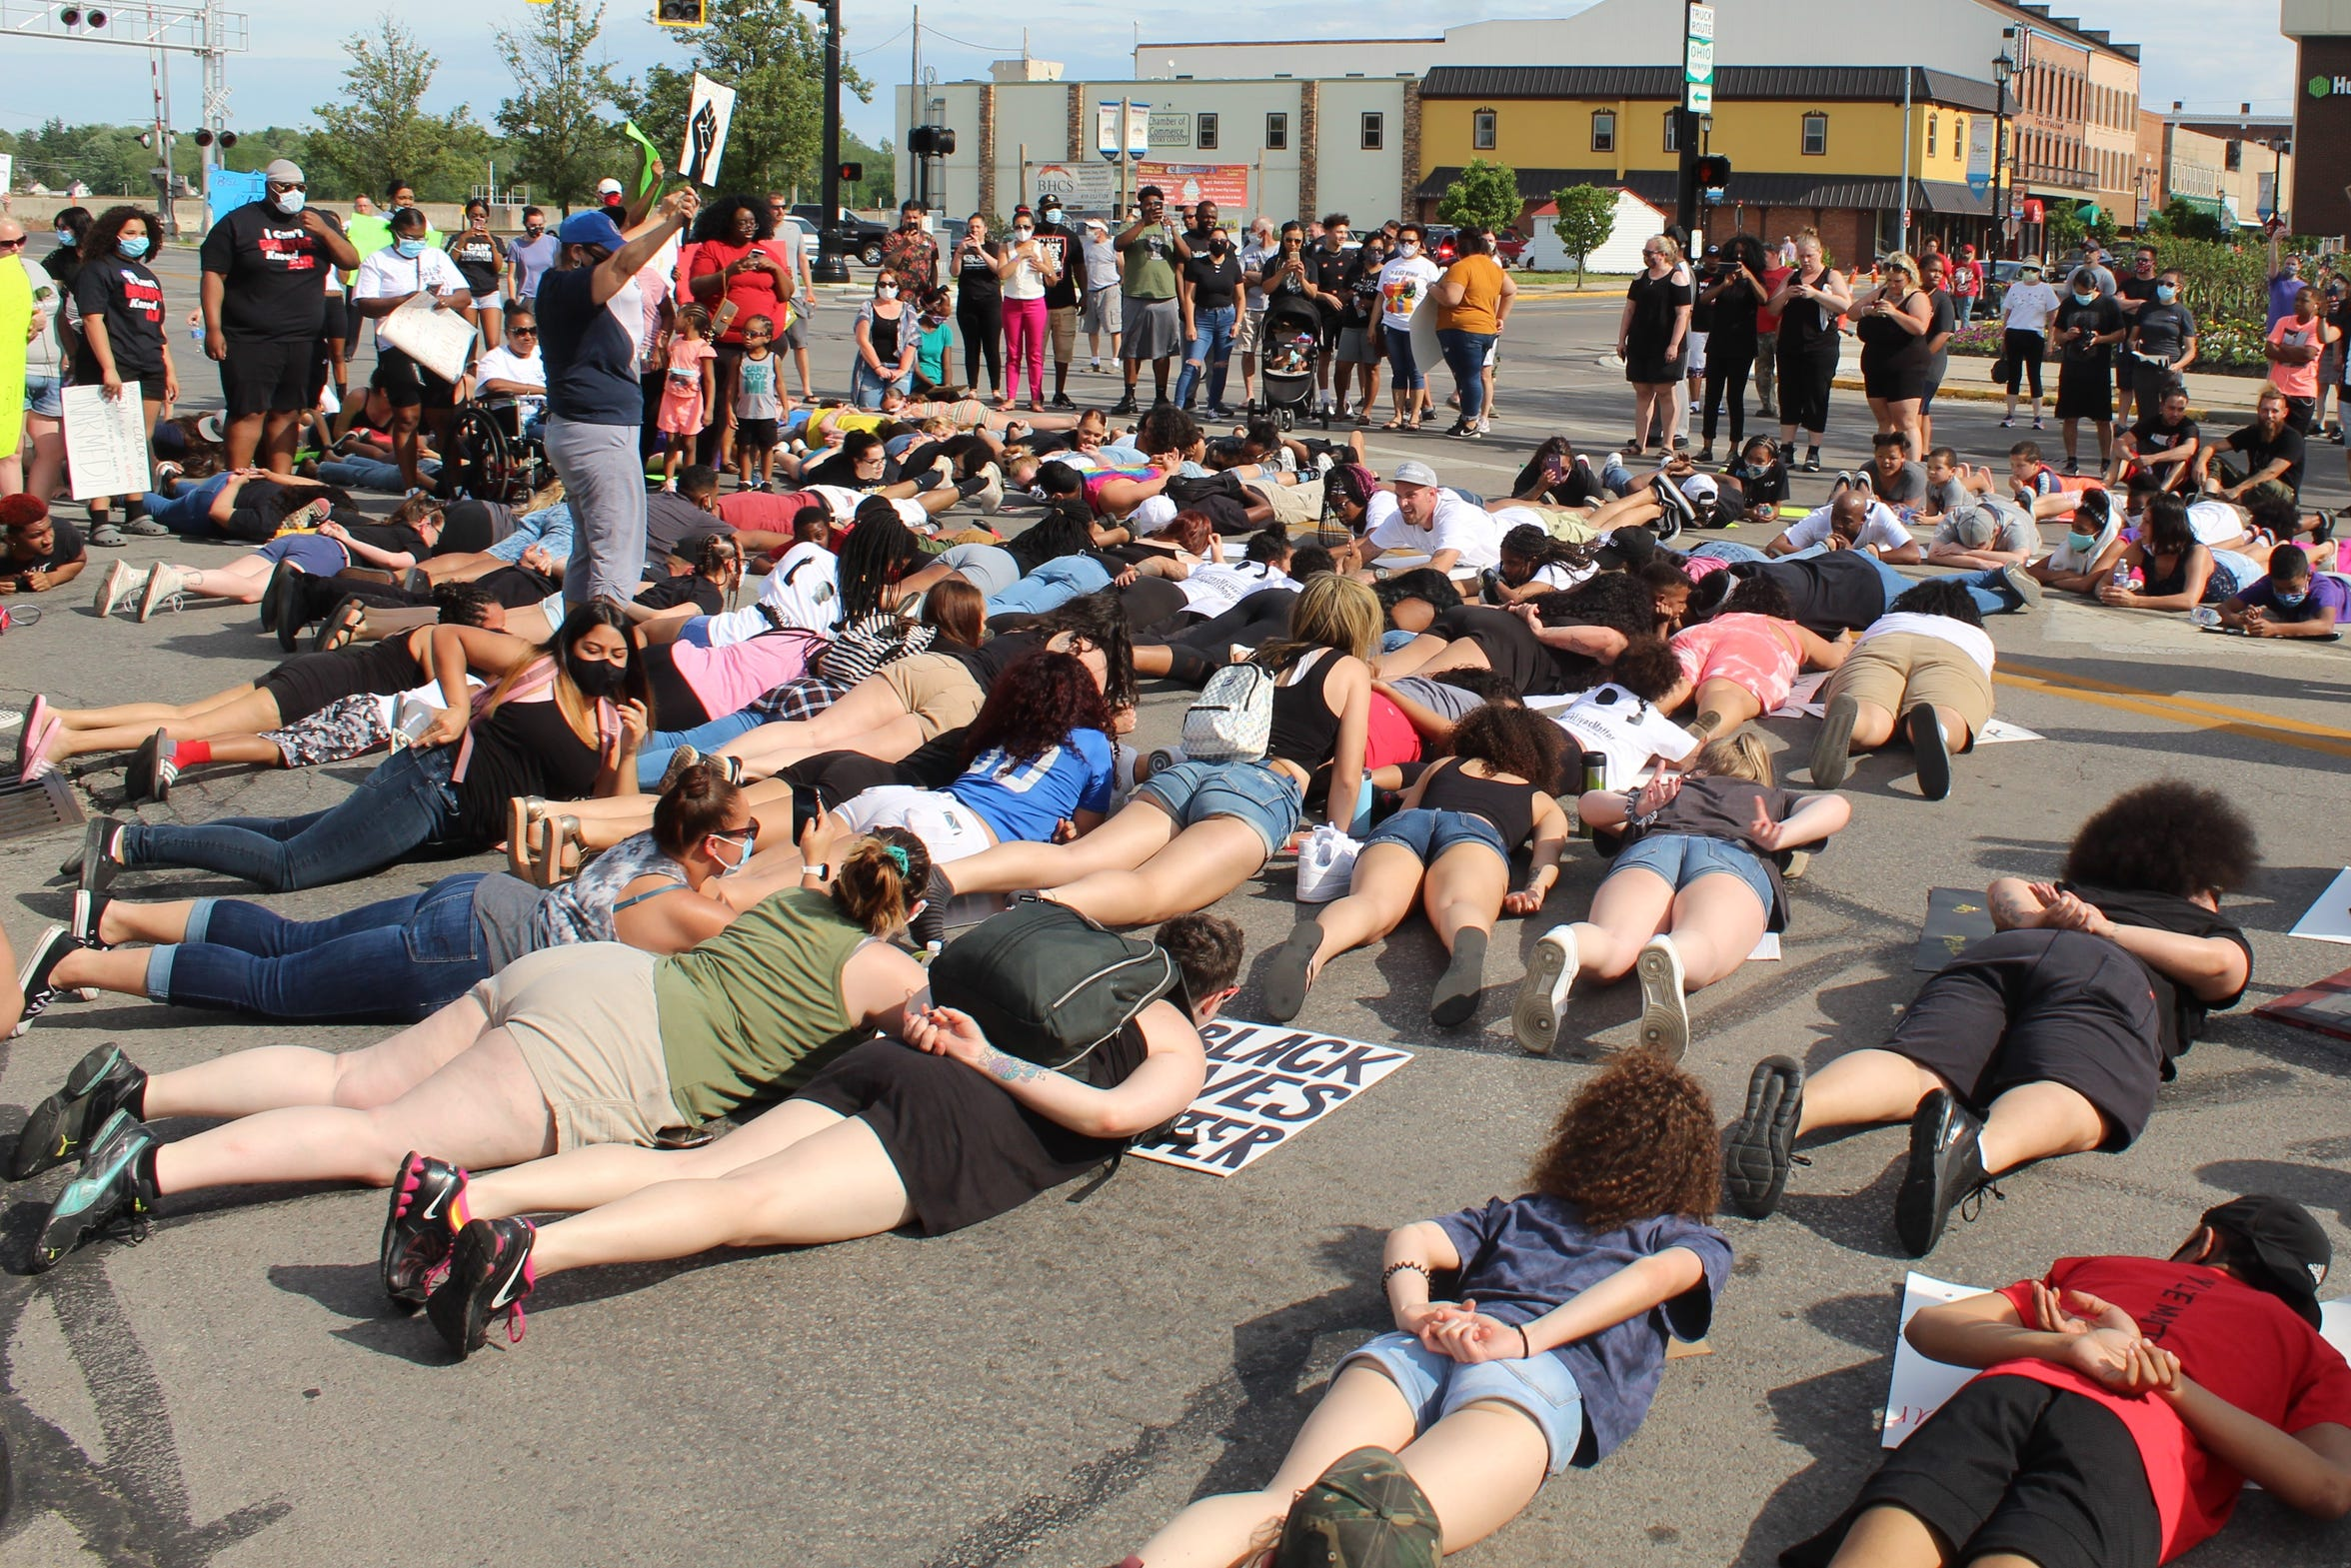 Dozens of residents lie down in protest near the intersection of Front and State Streets at an anti-racism vigil Wednesday evening in Fremont.